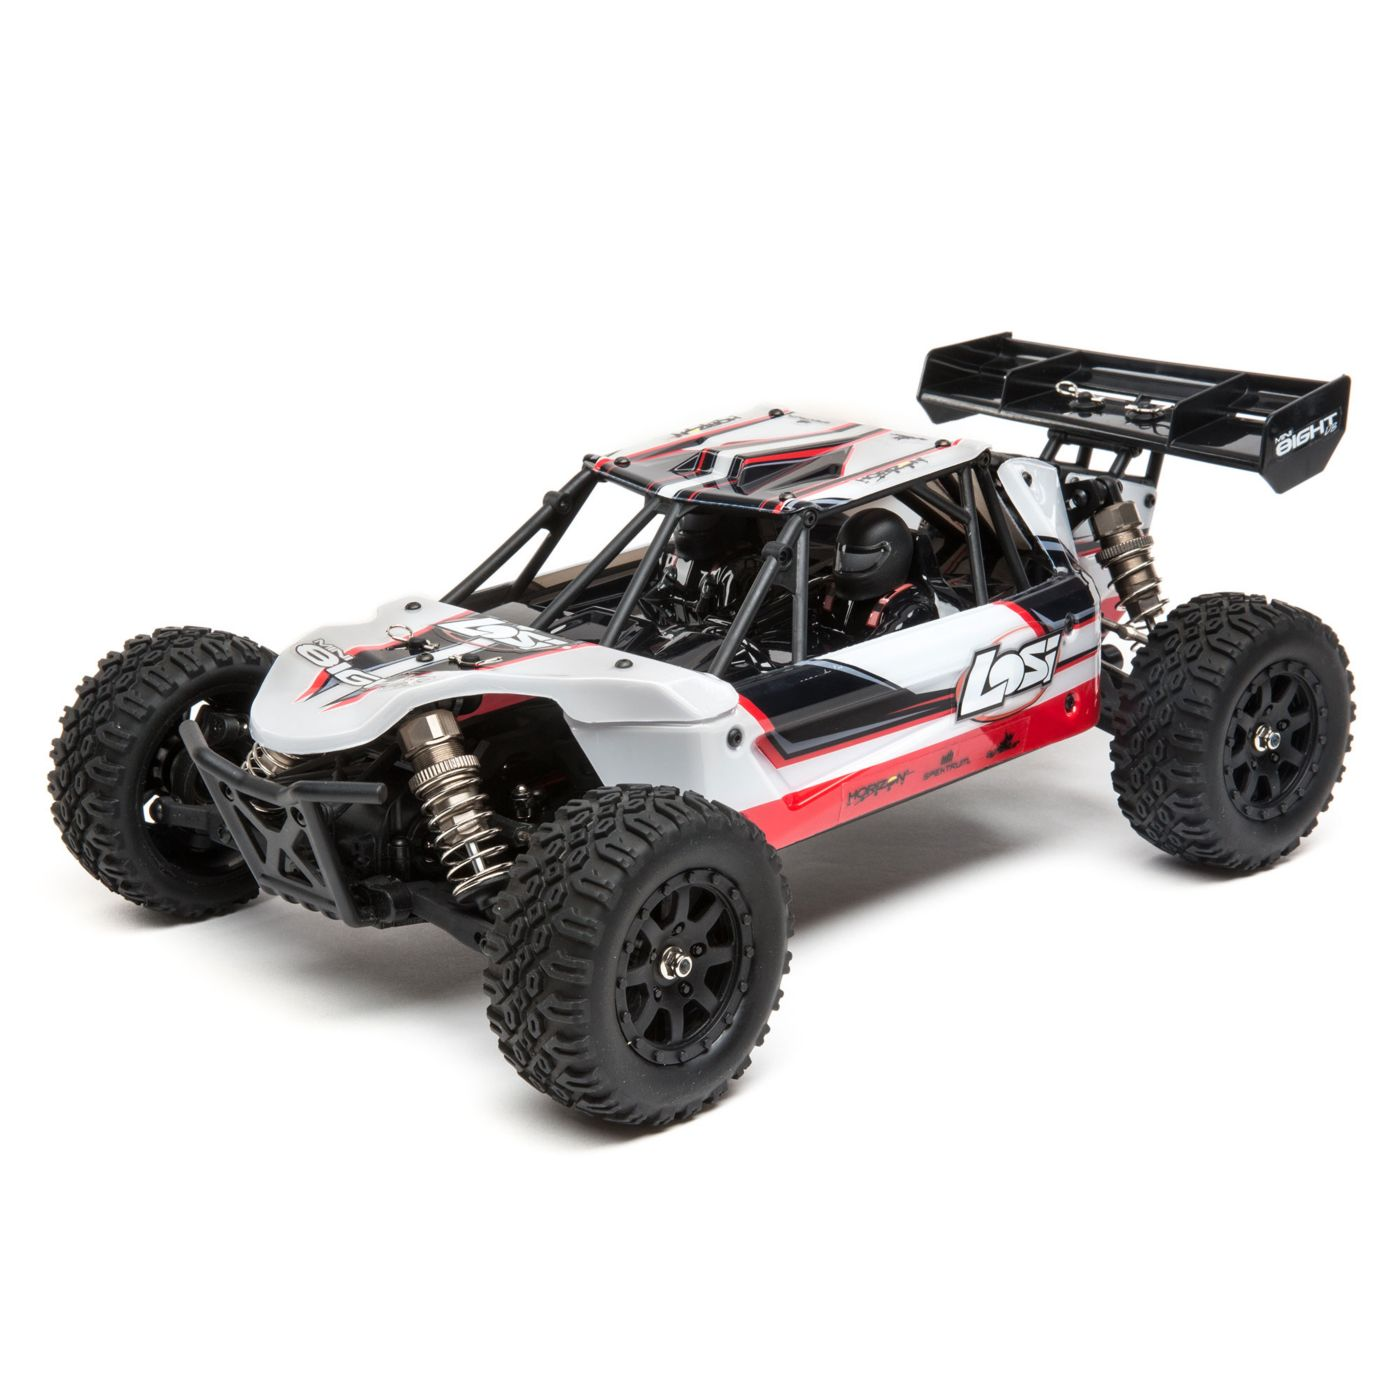 Losi's Pint-sized Mini 8ight DB